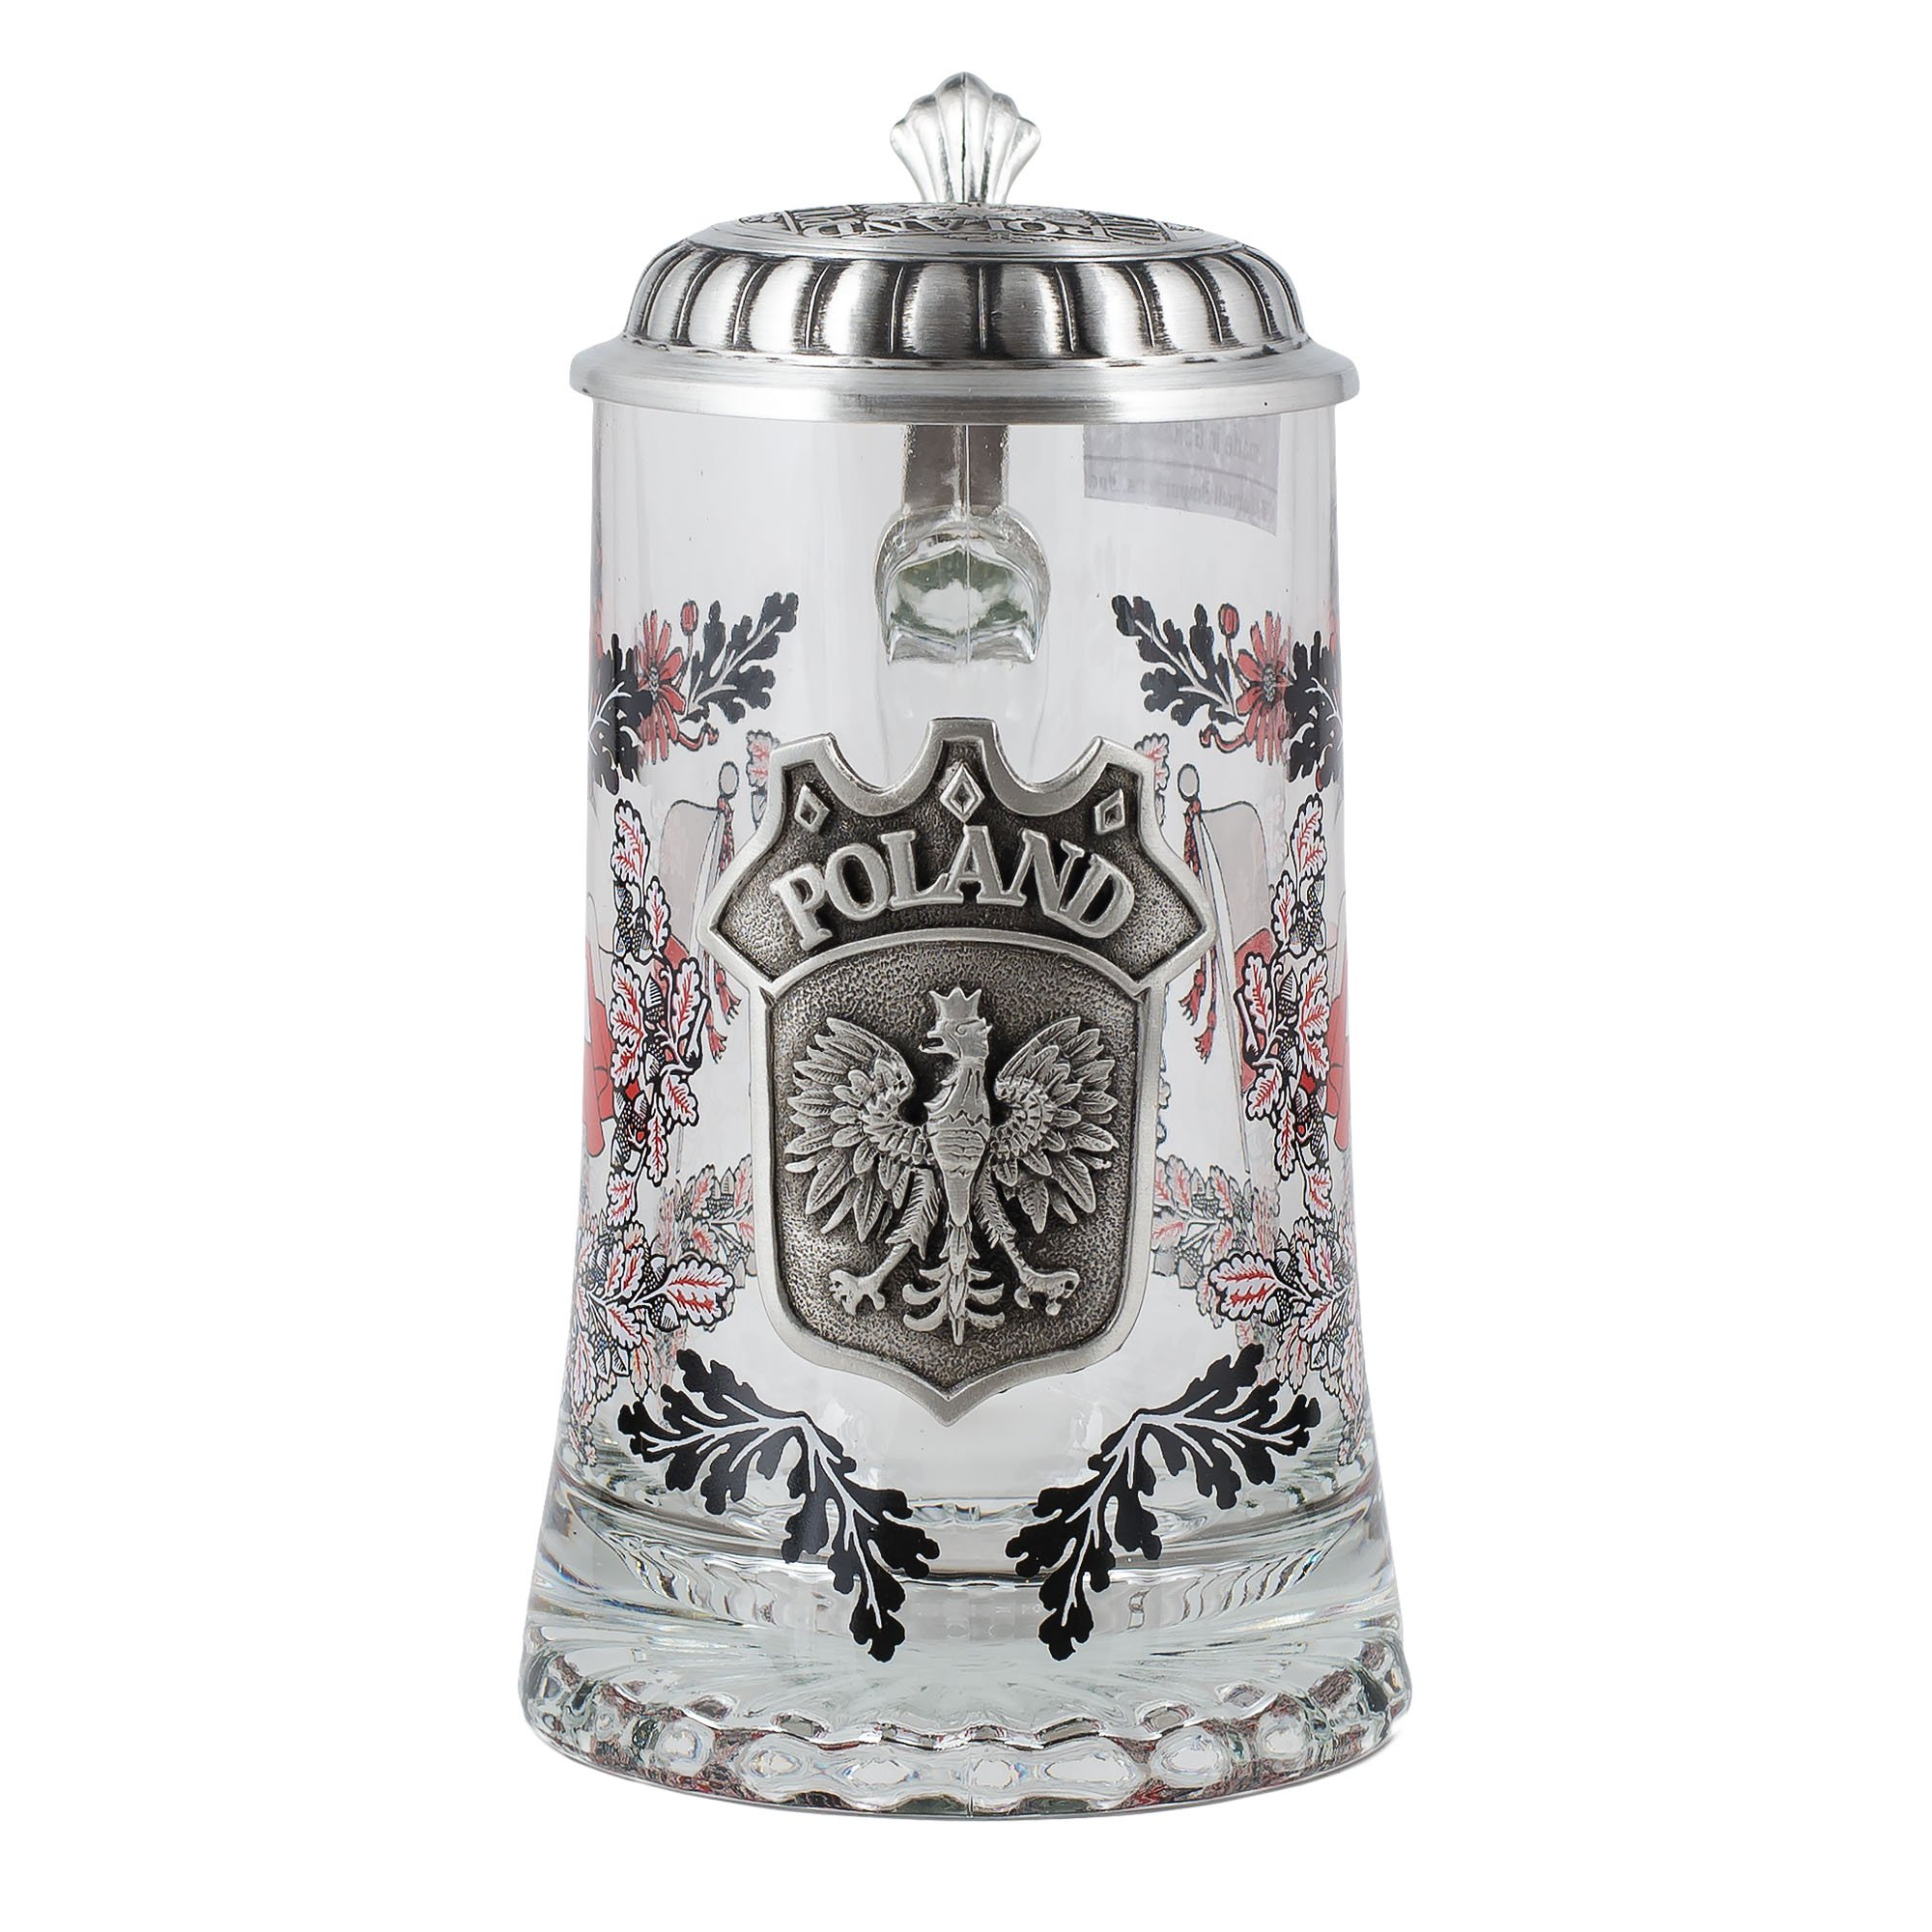 Glass Poland Steins - 1 Piece